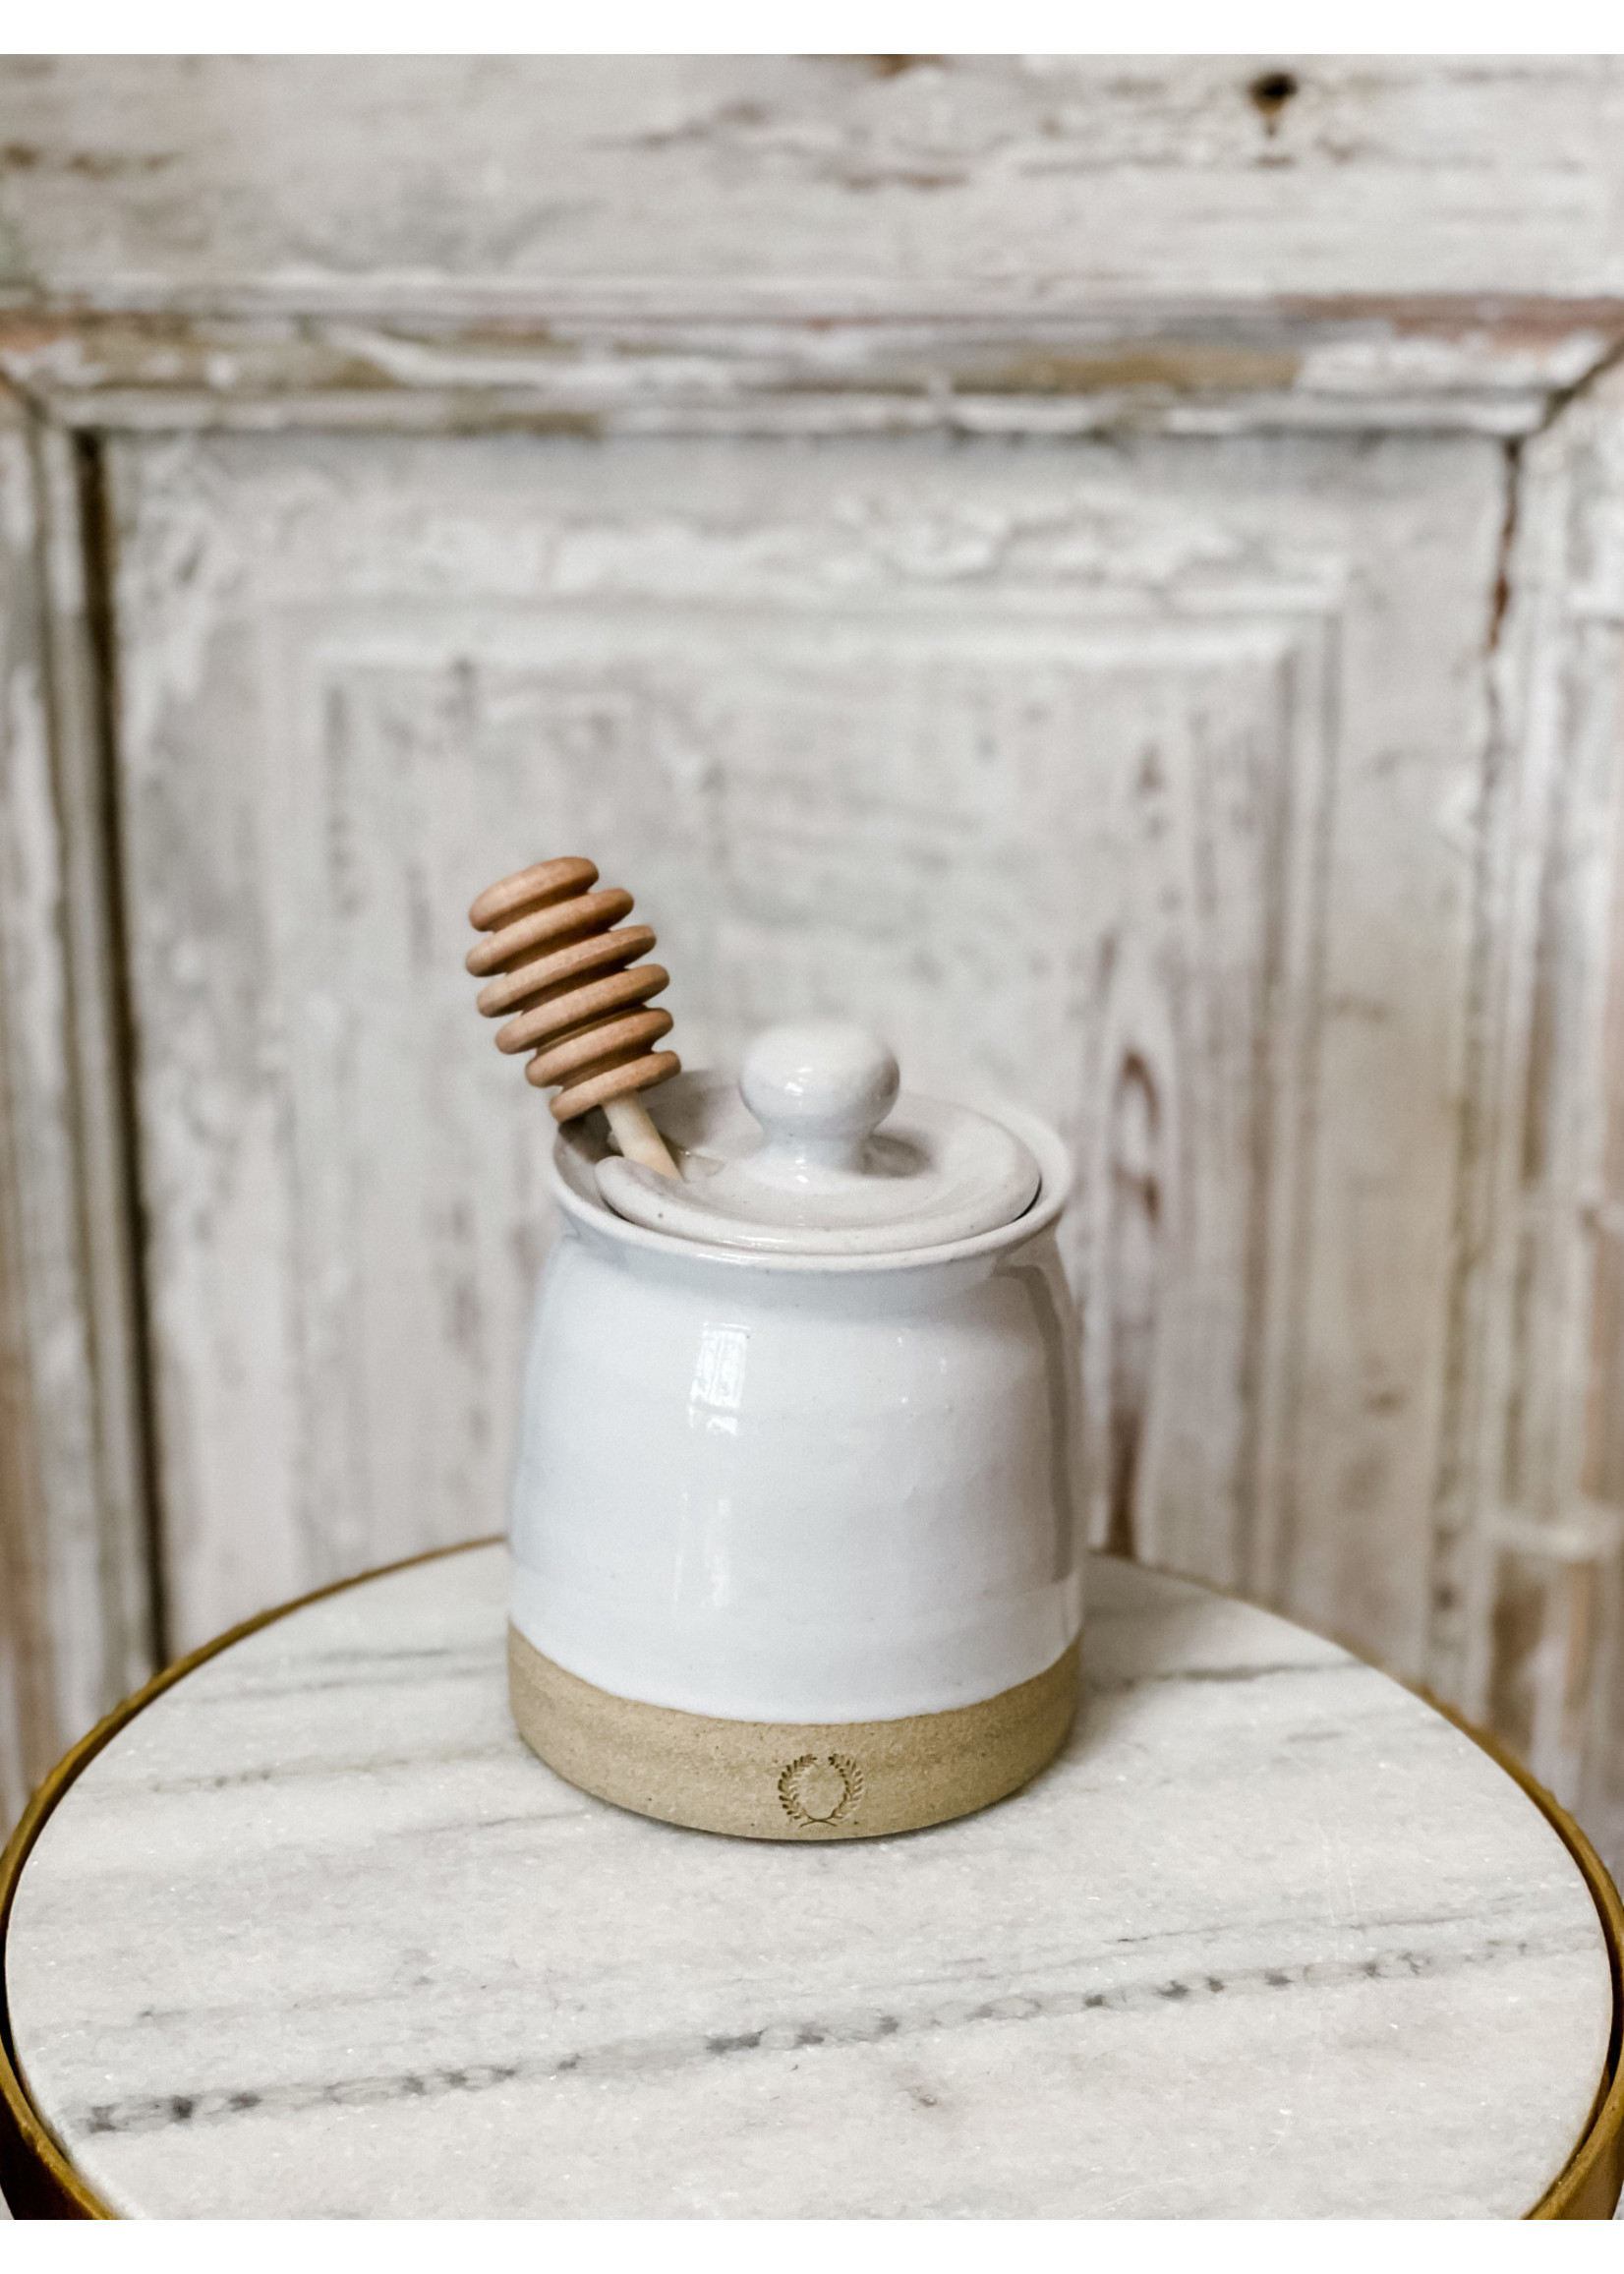 Farmhouse Pottery Beehive Honey Pot with Wooden Dipper